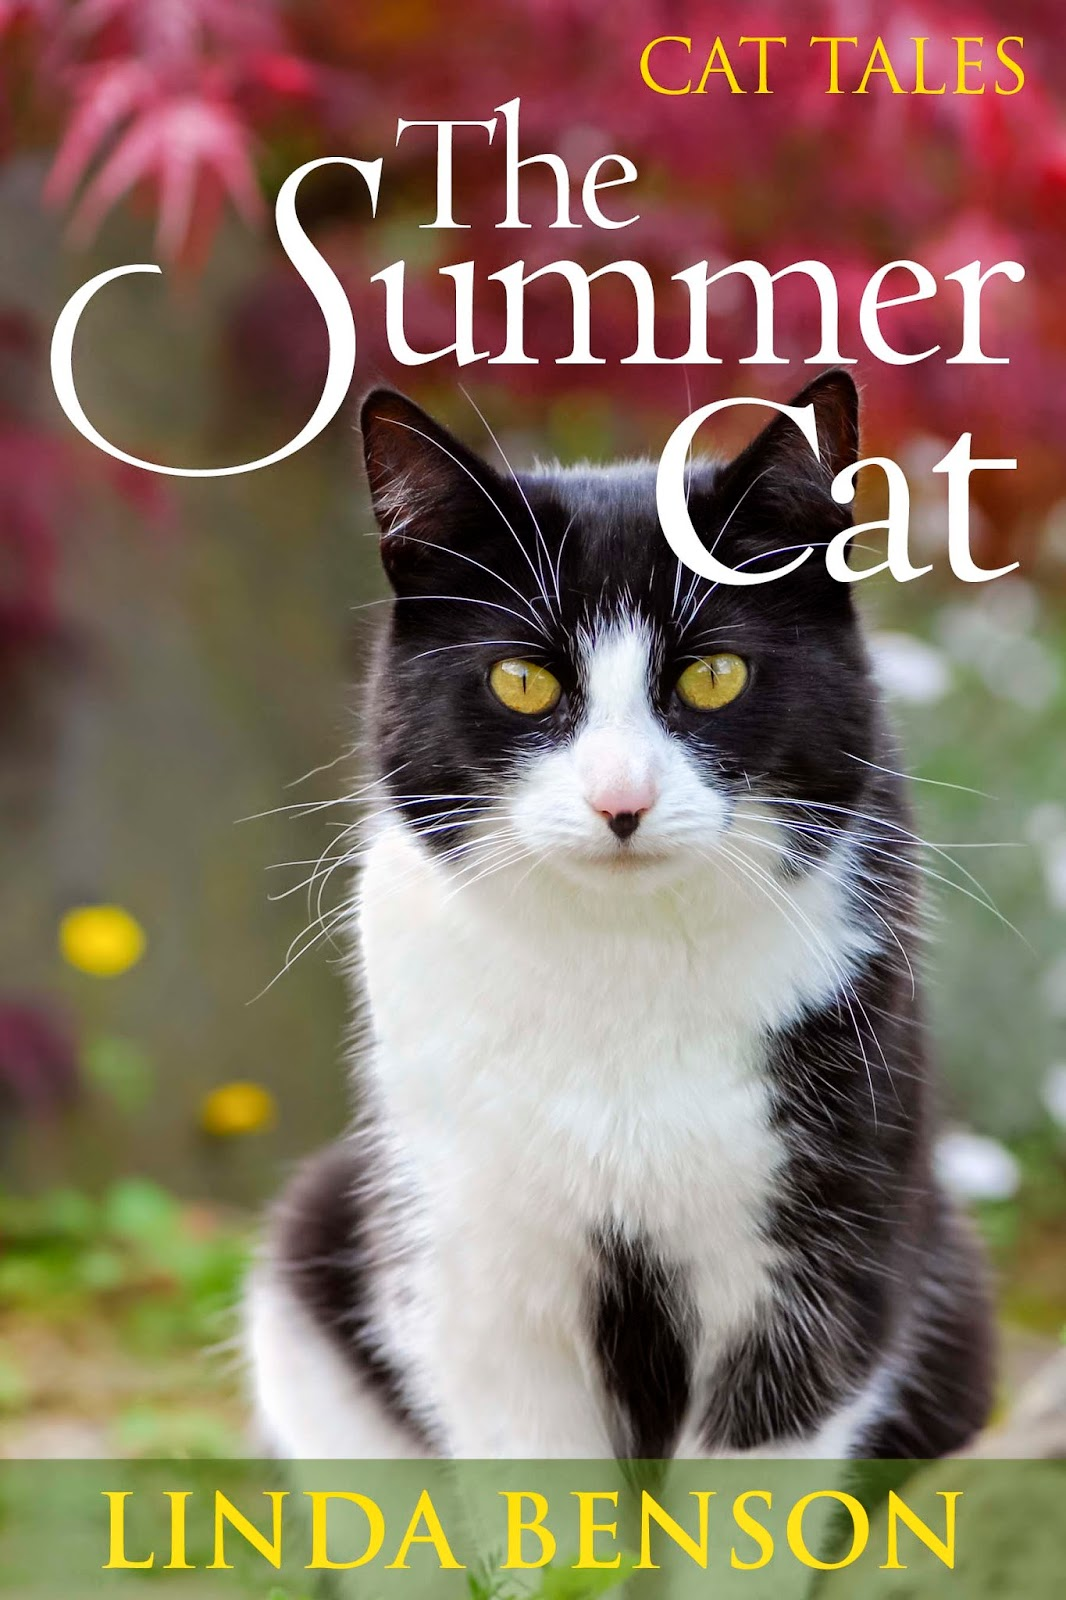 http://www.amazon.com/Summer-Cat-Tales-ebook/dp/B00KRPZLVQ/ref=sr_1_1?s=digital-text&ie=UTF8&qid=1402169900&sr=1-1&keywords=the+summer+cat